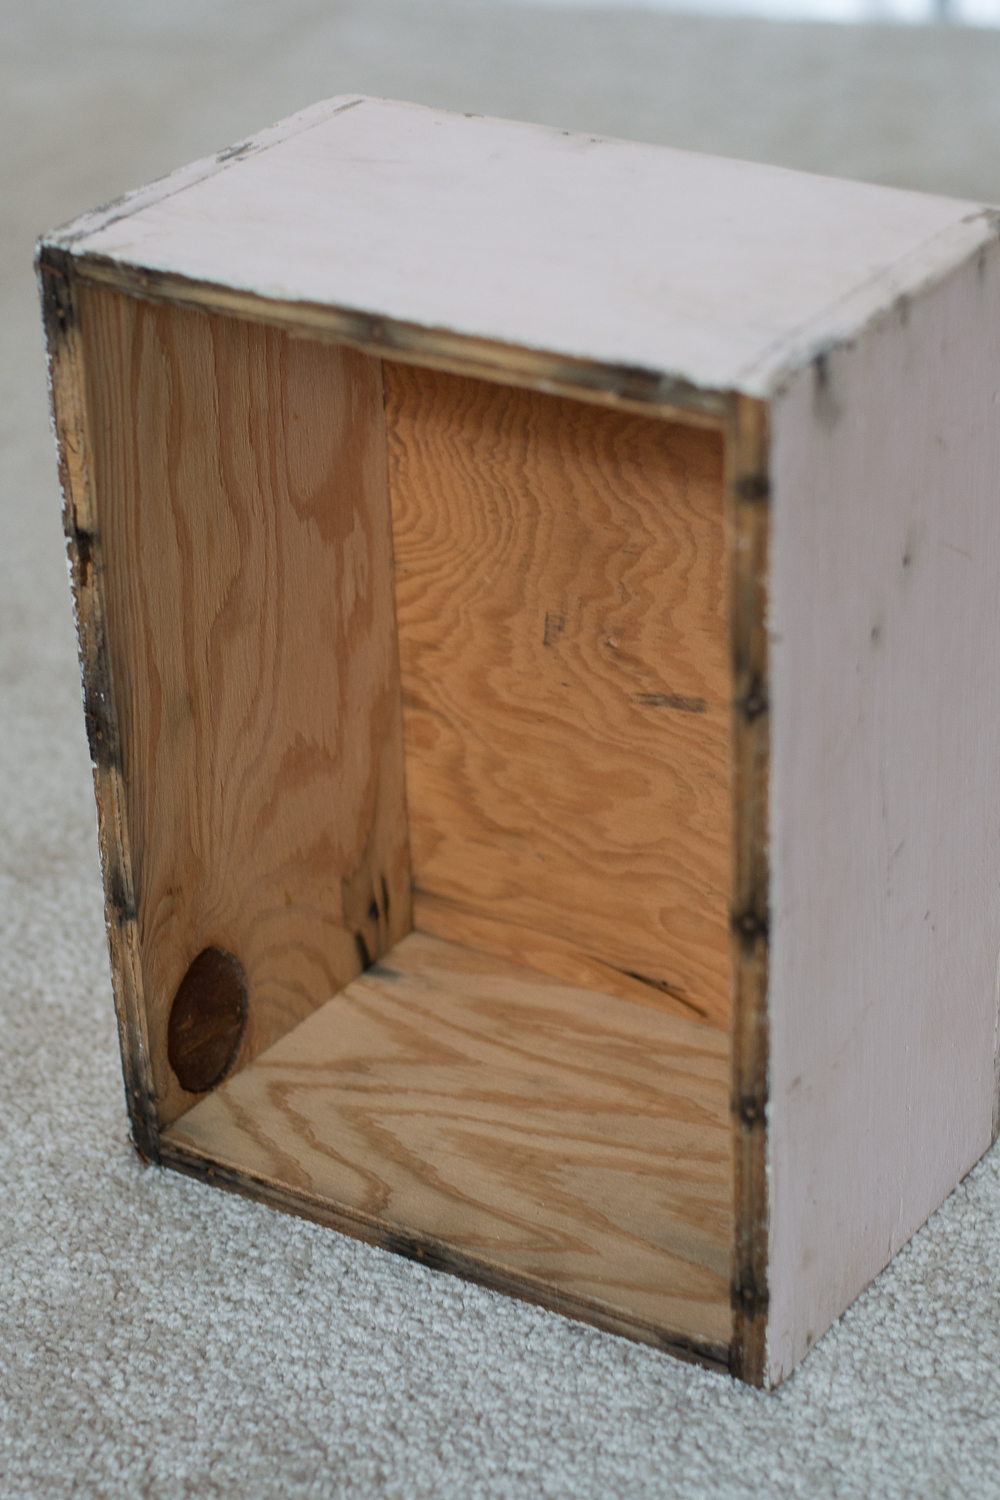 DIY Storage Boxes from Inexpensive Plywood